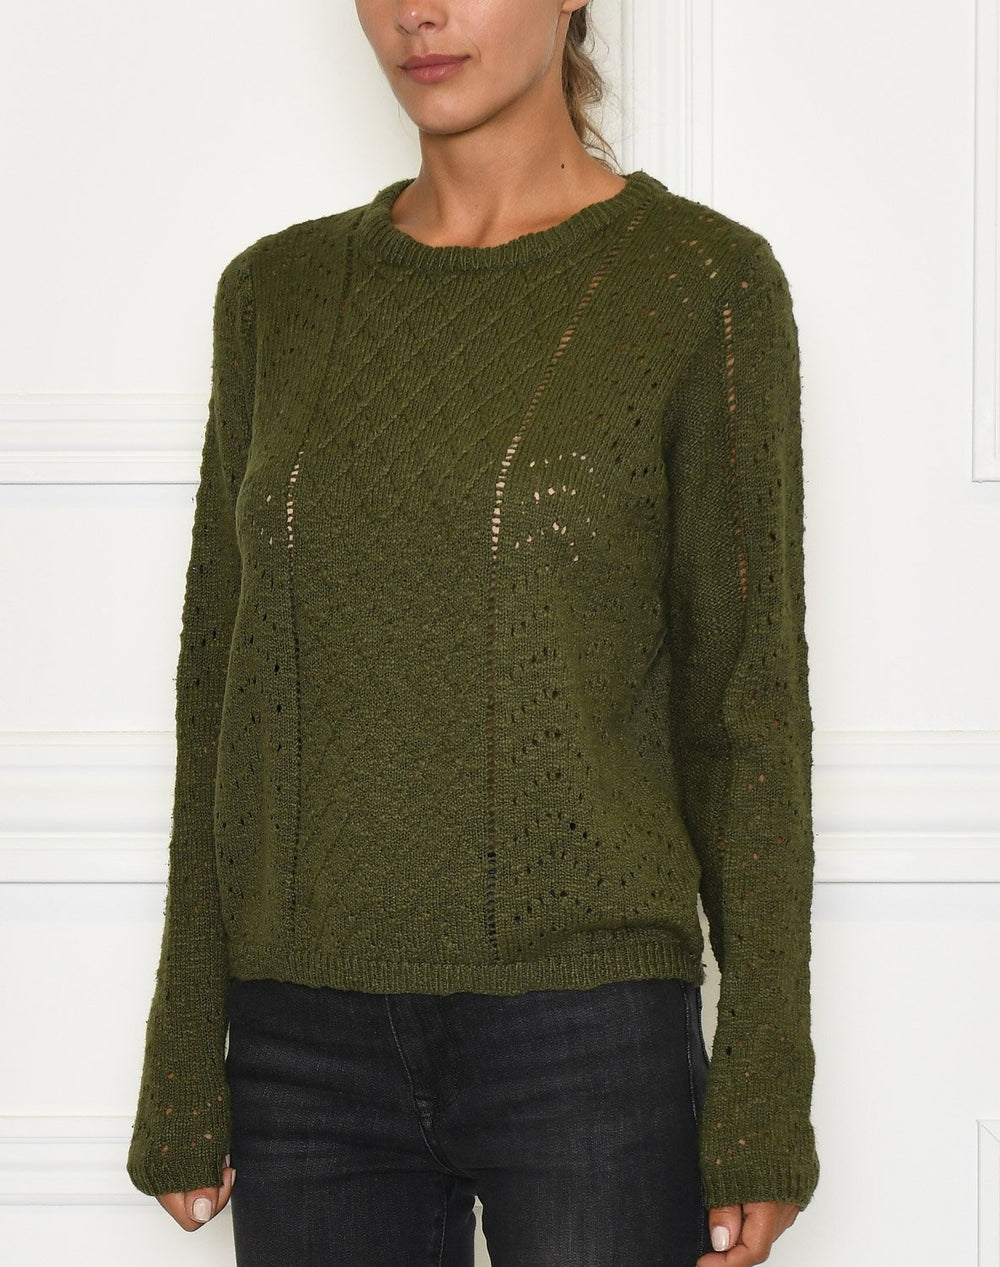 Ofelia Kissar knit blouse olive - Online-Mode